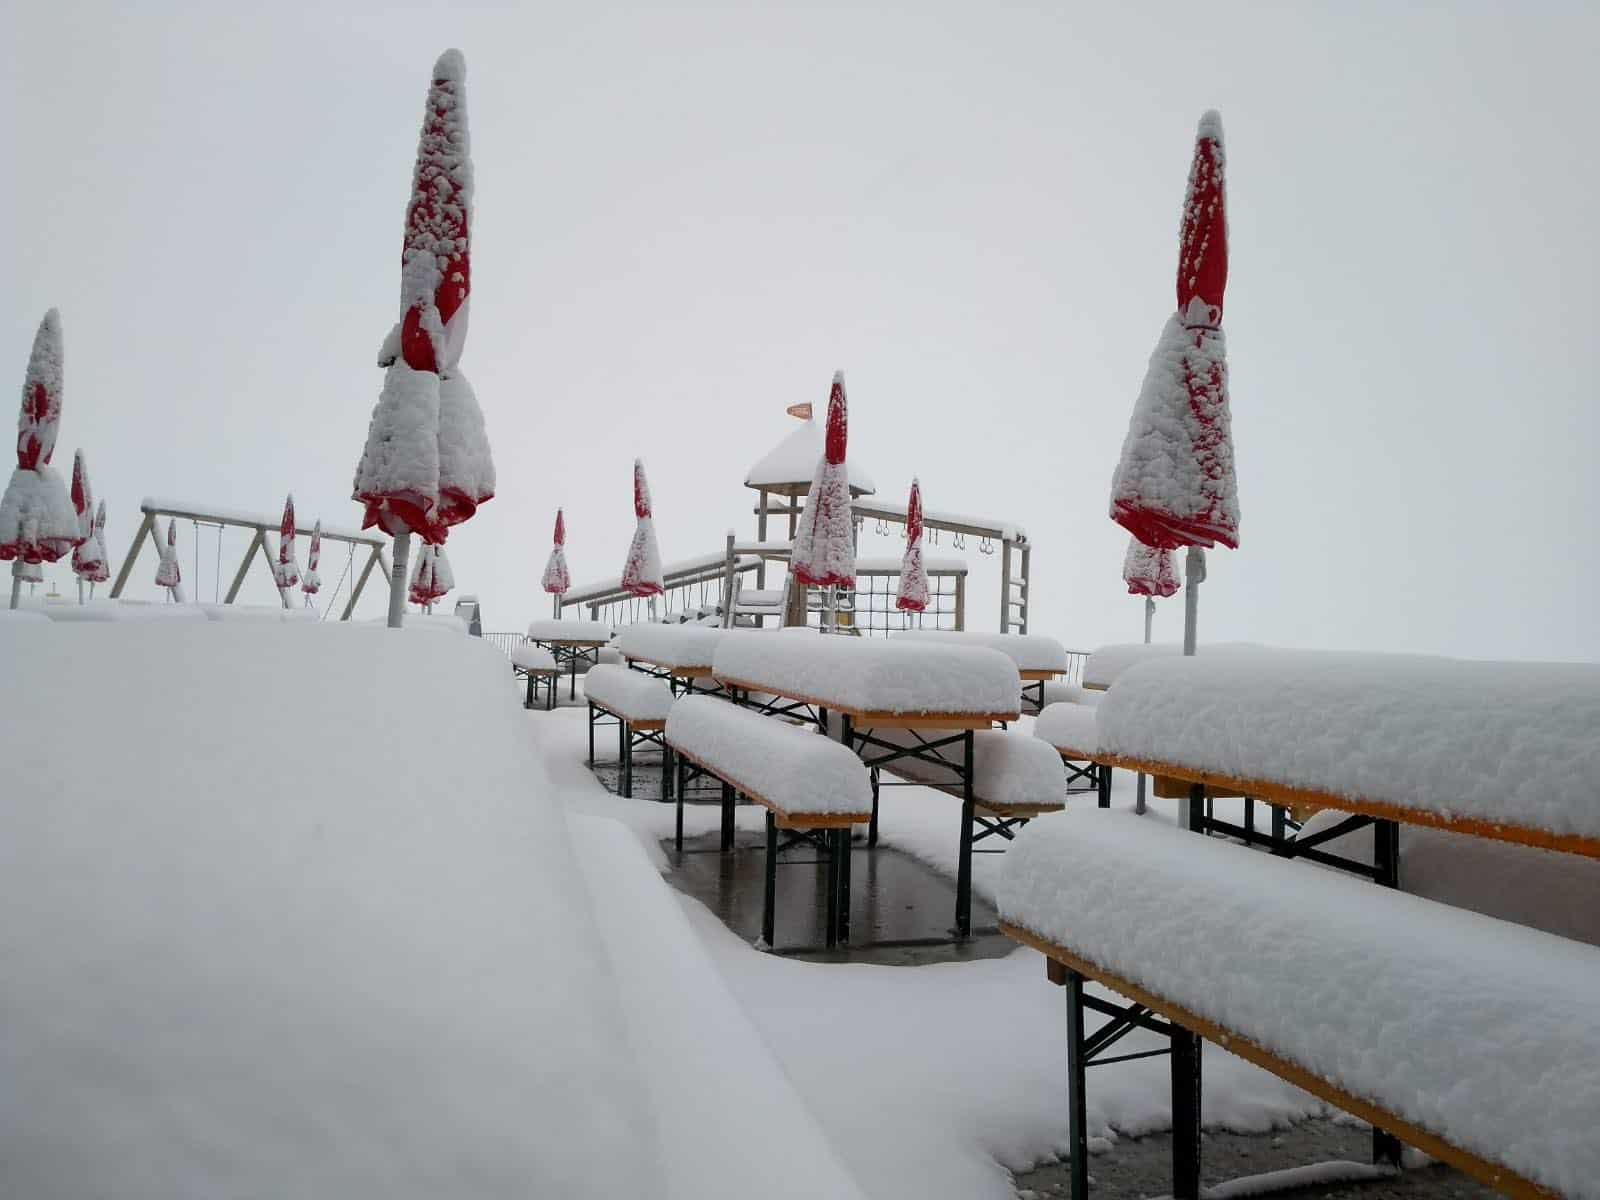 Set to open next month, Stubai Glacier (Stubaier Gletscher) has gotten in early for the first snow of the 2018/19 winter season… as it's still summer. Image:: Stubai Glacier